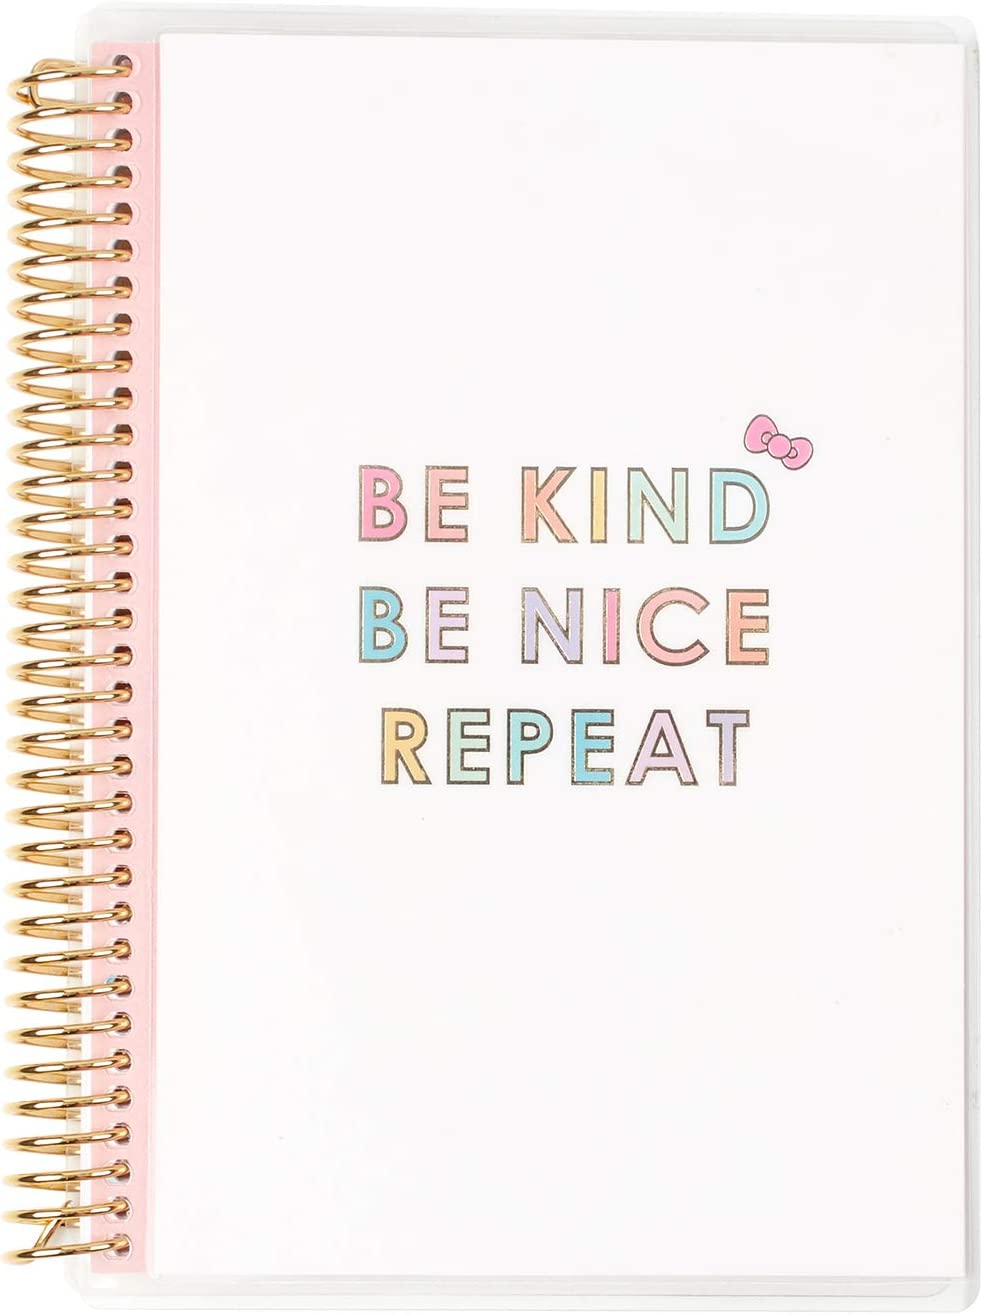 Erin Condren Over item handling A5 Inventory cleanup selling sale Spiral Coiled Daily Kitty Hello Kindnes Notebook